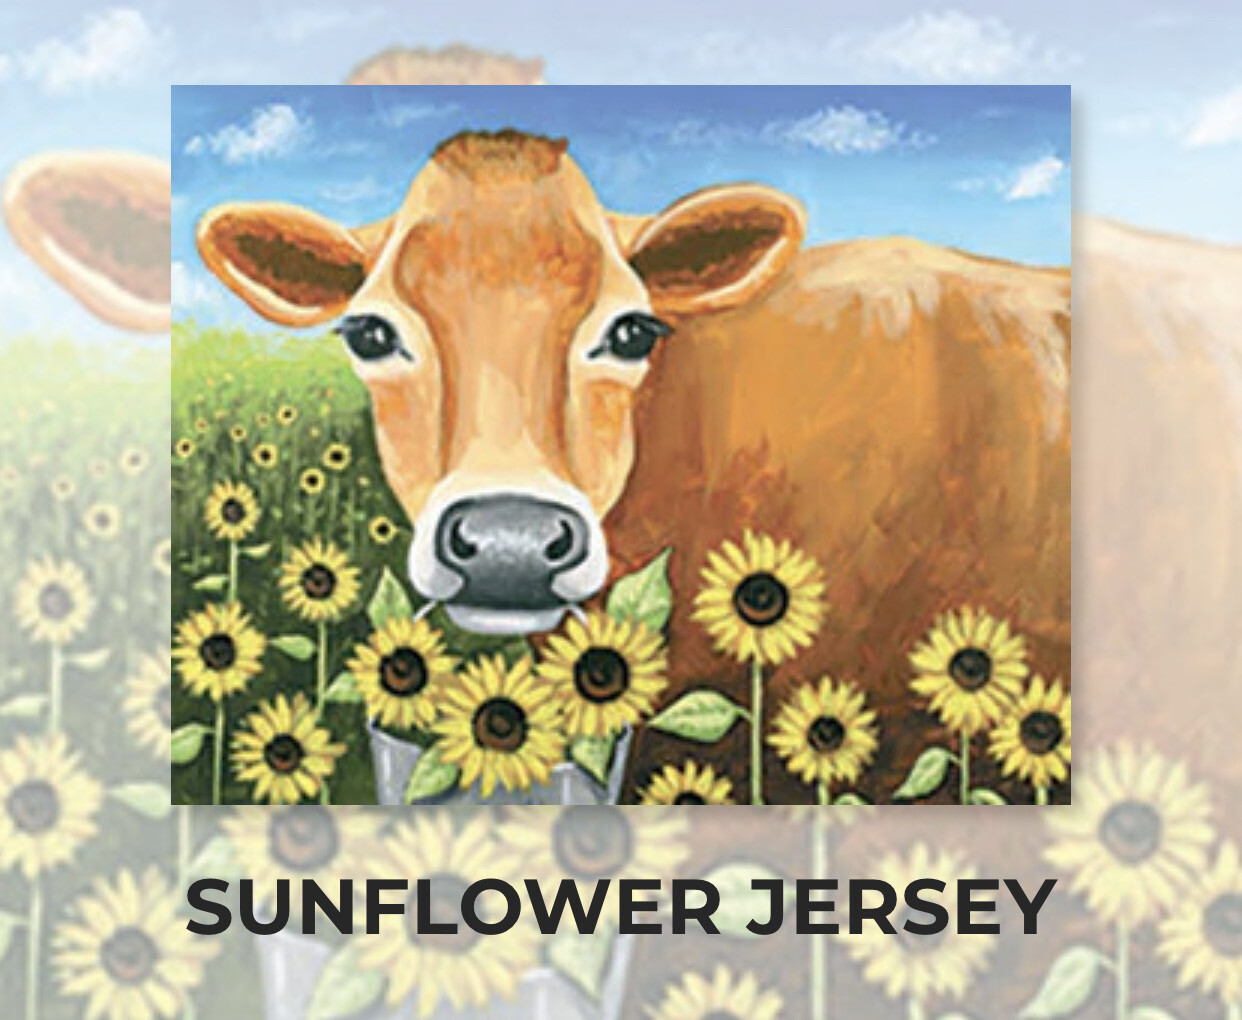 Sunflower Jersey ADULT Acrylic Paint On Canvas DIY Art Kit - 3 Week Special Order